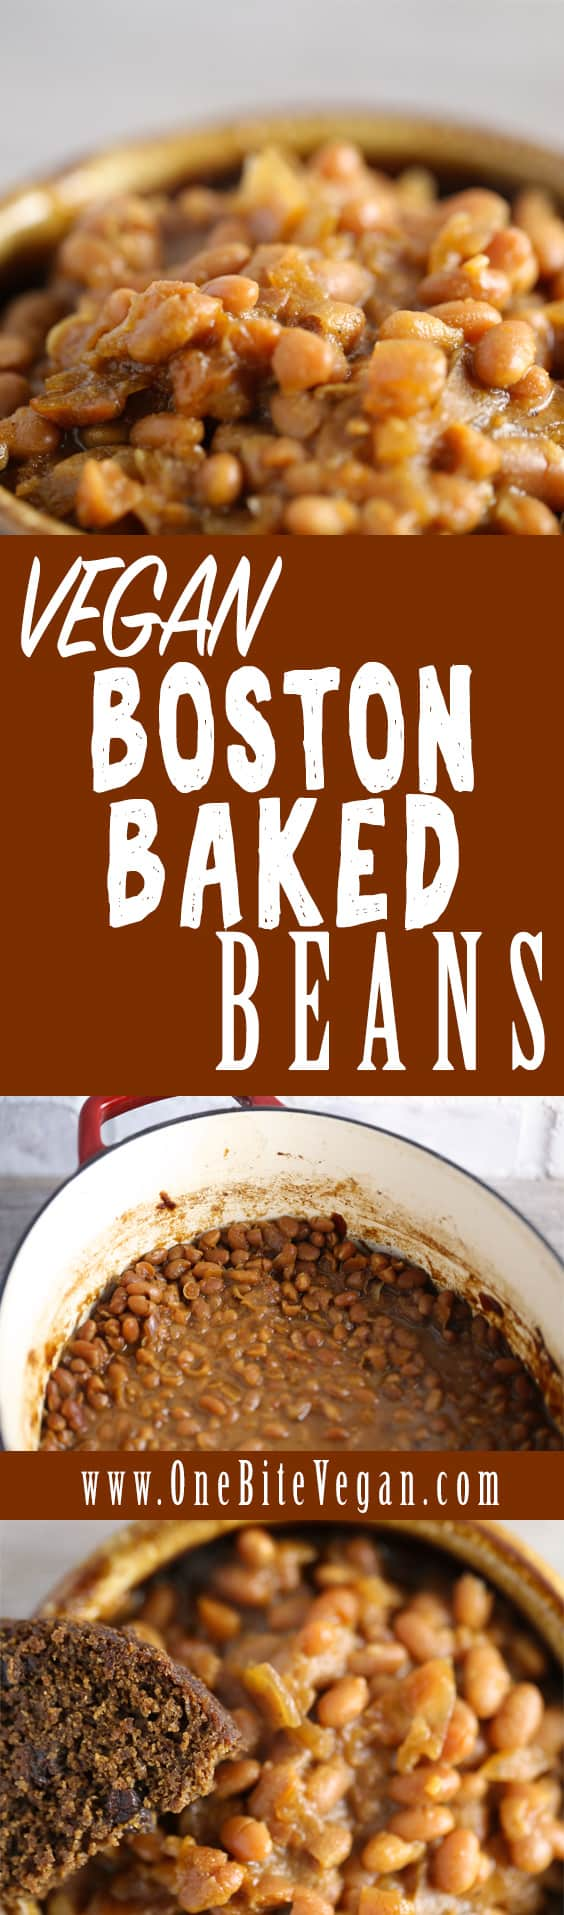 Vegan Boston baked beans. Navy beans with molasses, maple syrup, garlic, mustard, onion, and tomato then baked in the oven for 6 hours at low temperature.